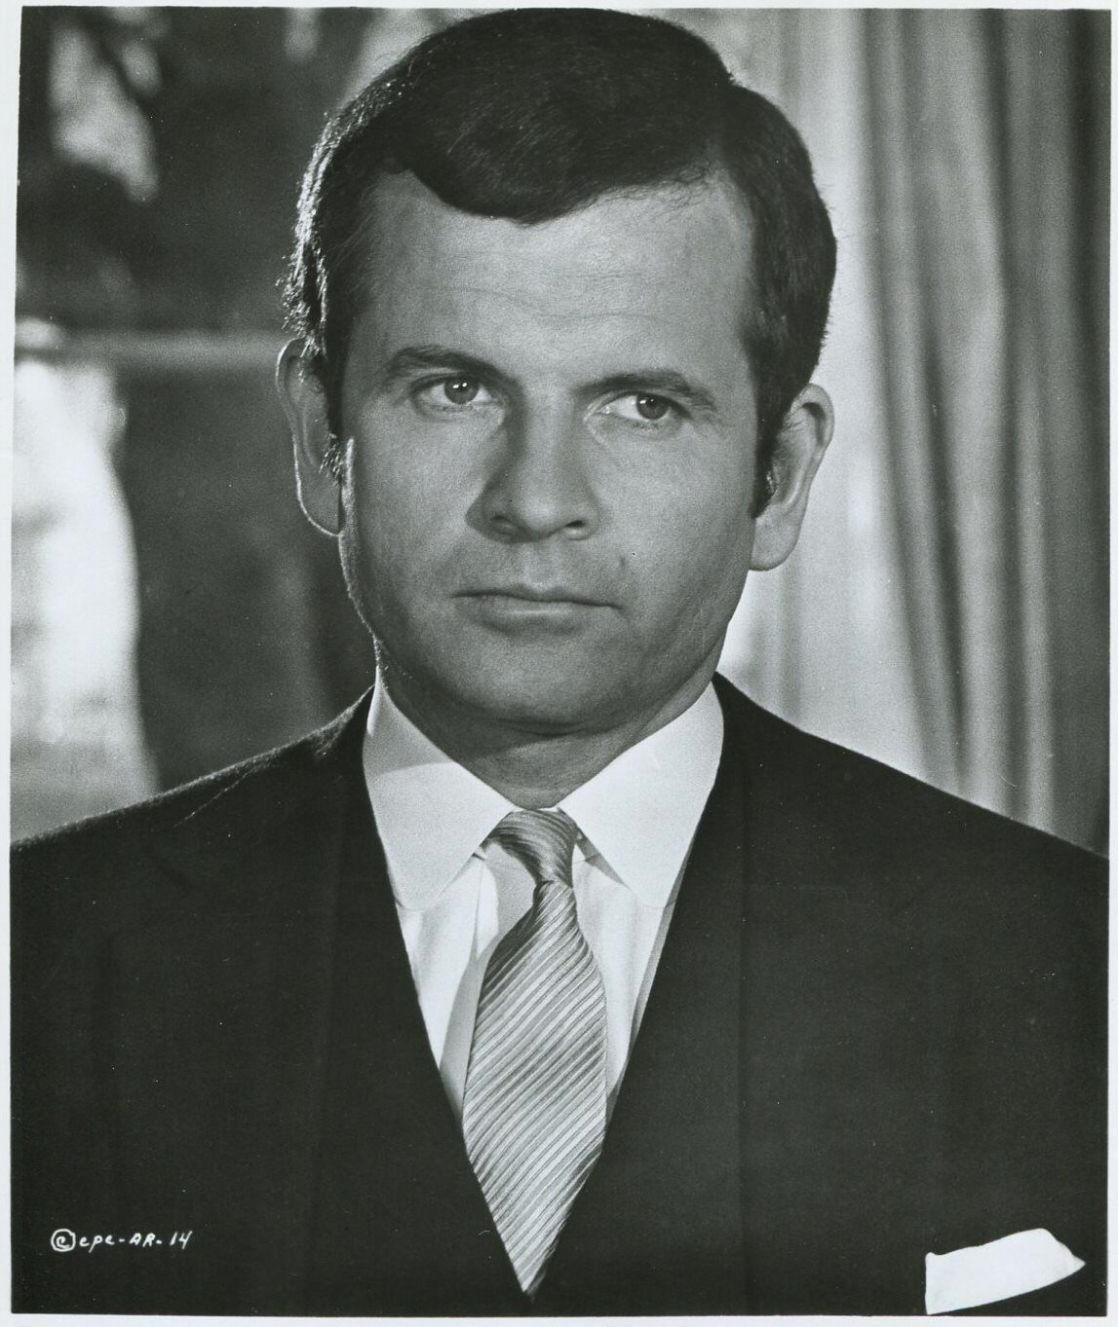 Ian Holm Ian Holm before he turned into the Hobbit Bilbo Baggins Actors 1